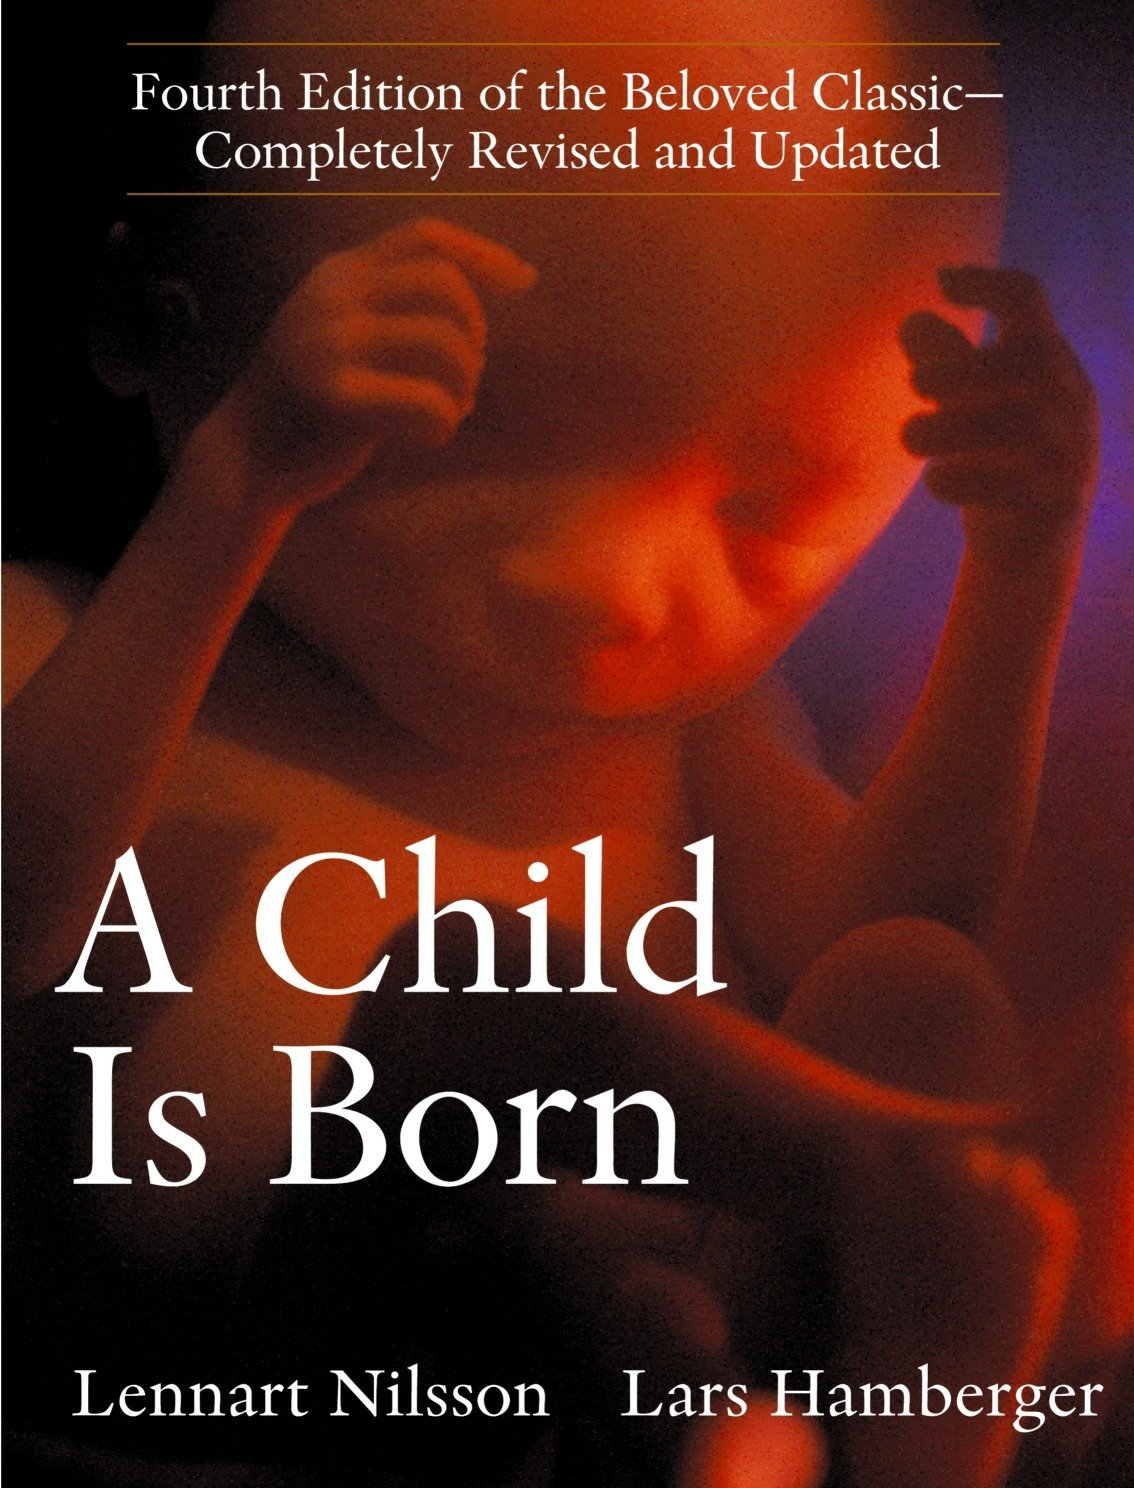 A child is born - By Lennart NilssonIn this latest edition of a classic originally published almost 40 years ago, photographer Nilsson and obstetrician Hamberger explore the miracle of birth, from attraction between a man and a woman to fertilization, pregnancy, labor and delivery; they also discuss infertility and developments in IVF and other treatments. Over 350 new photographs have been added to the fourth edition, including in utero pictures captured with endoscopy and three-dimensional ultrasound technology. Nilsson zooms in on sperm racing towards the egg, the brand-new zygote, the embryo clinging to the lining of the uterus, a tadpole-like fetus and the remarkably developed ear of a 18-week old fetus, among other moments in the process of human reproduction. With Hamberger's updated text on guidance for new parents, progress in fertility treatments, genetics and pregnancy health, the volume should continue to be a vivid reference for the whole family.